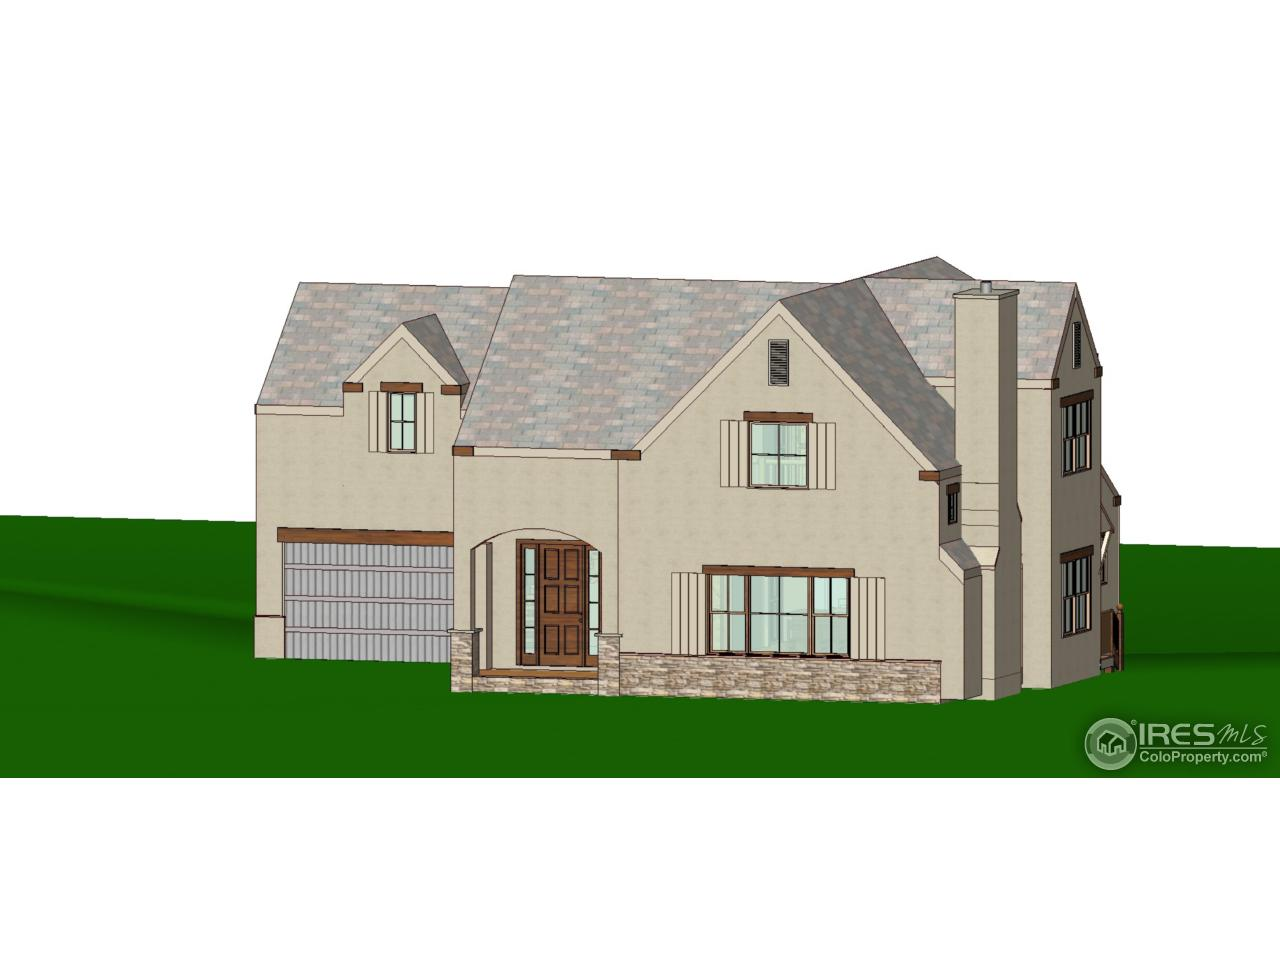 4814 Corsica Dr, Fort Collins, CO 80526